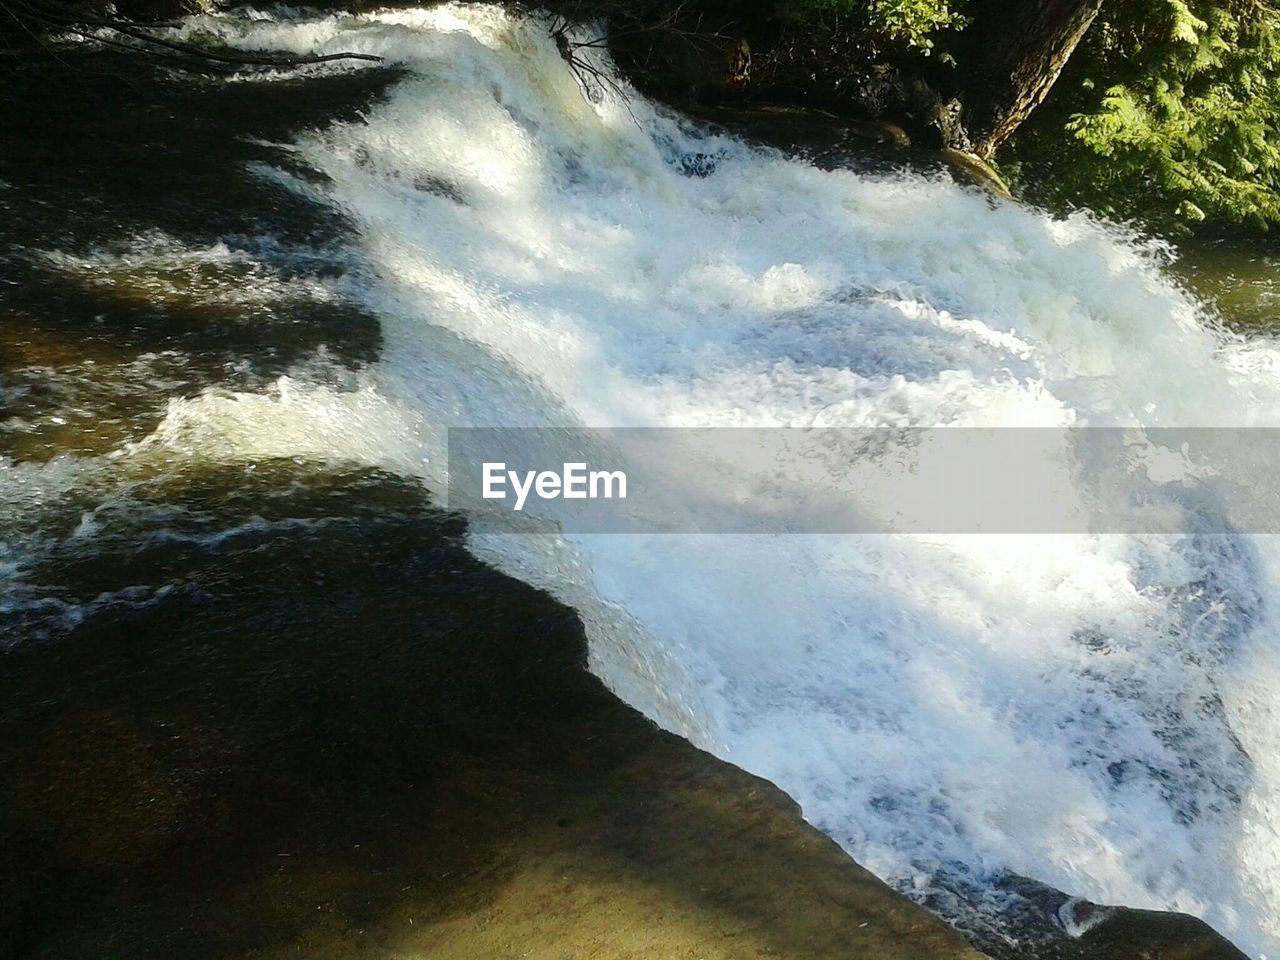 water, motion, flowing water, nature, waterfall, day, beauty in nature, high angle view, outdoors, no people, long exposure, scenics, blurred motion, tranquility, power in nature